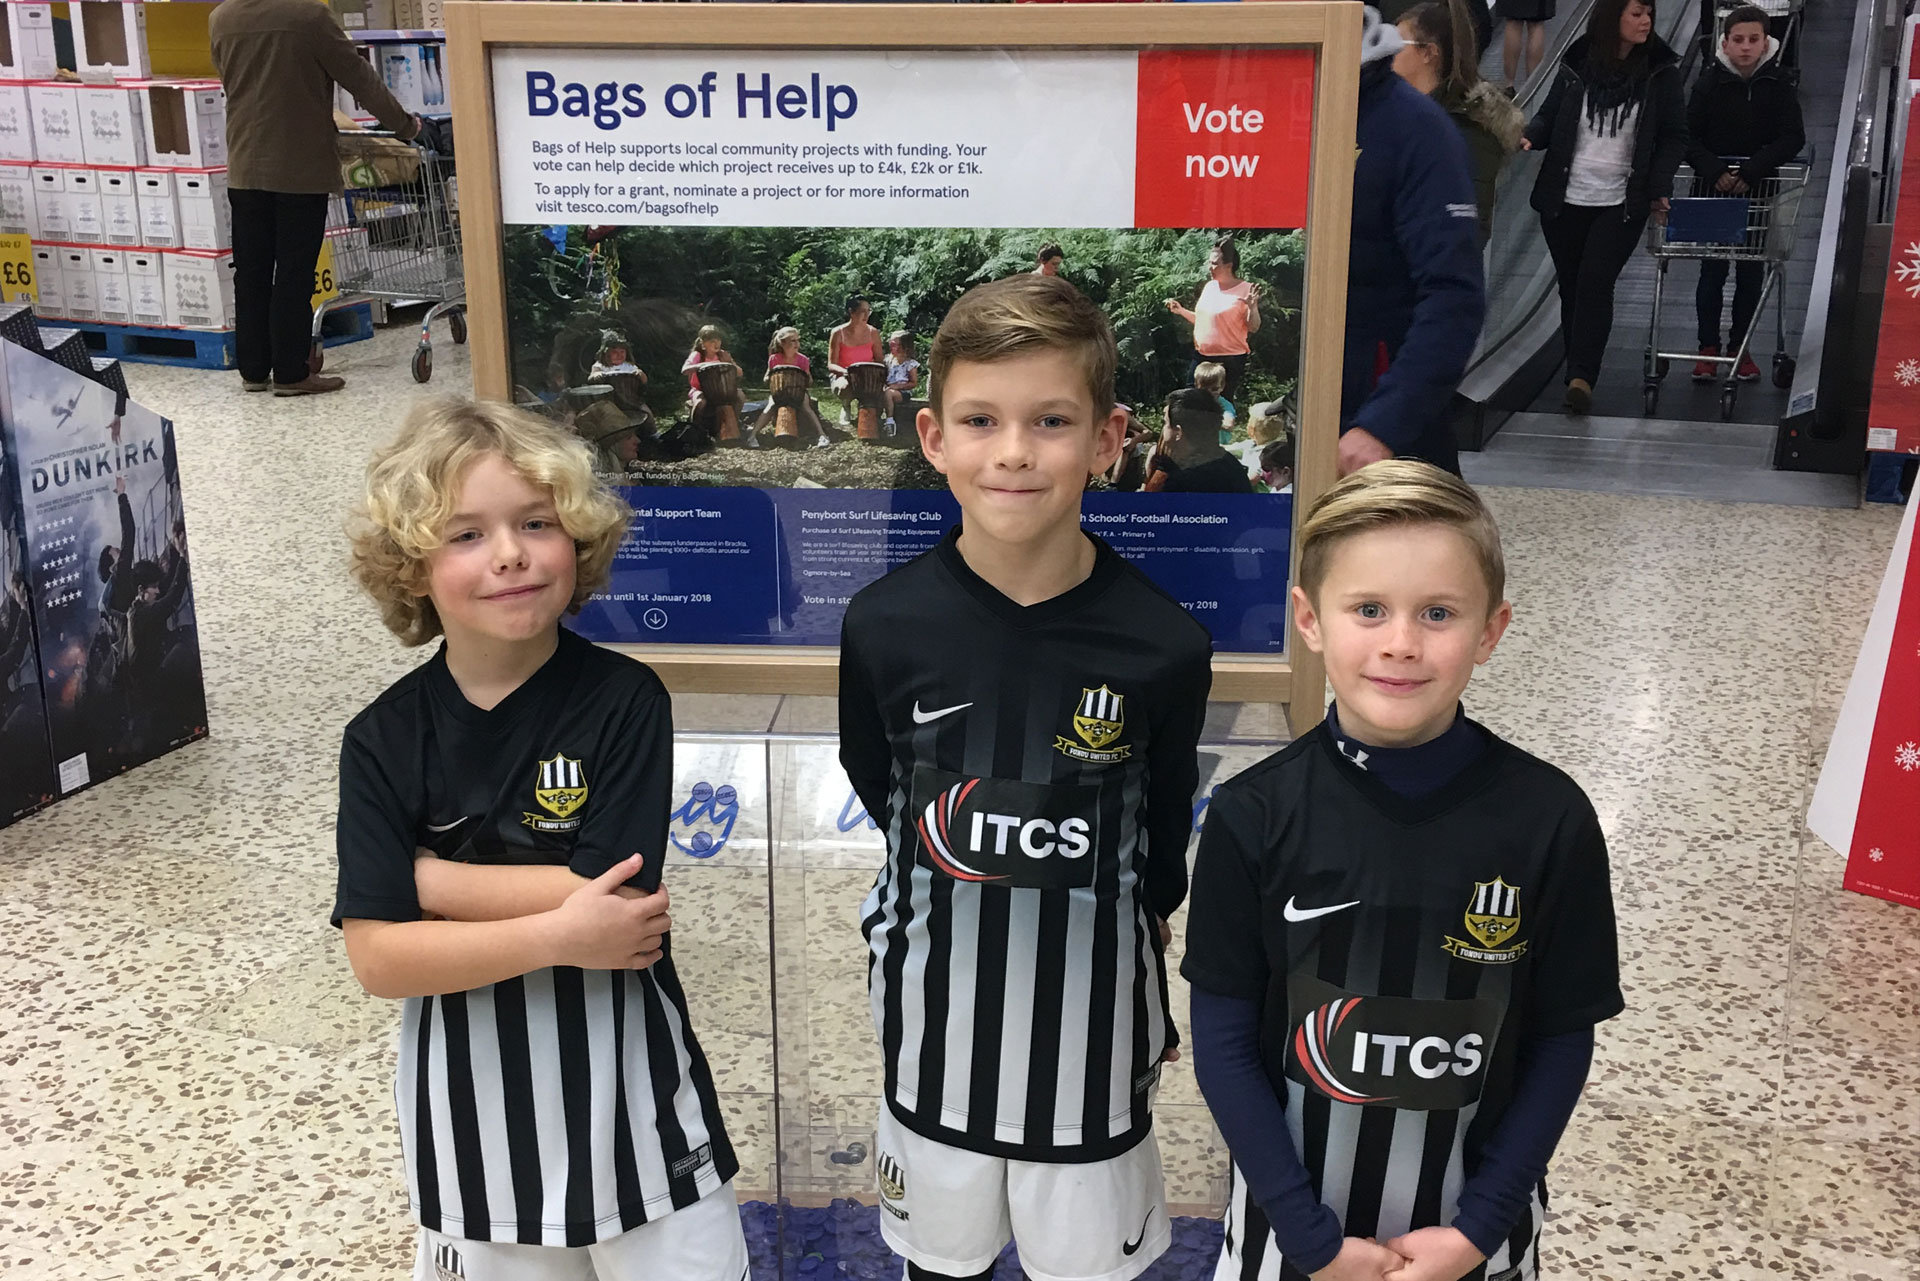 ITCS sponsored Tondu United FC scores 'Bags of Help' from Tesco